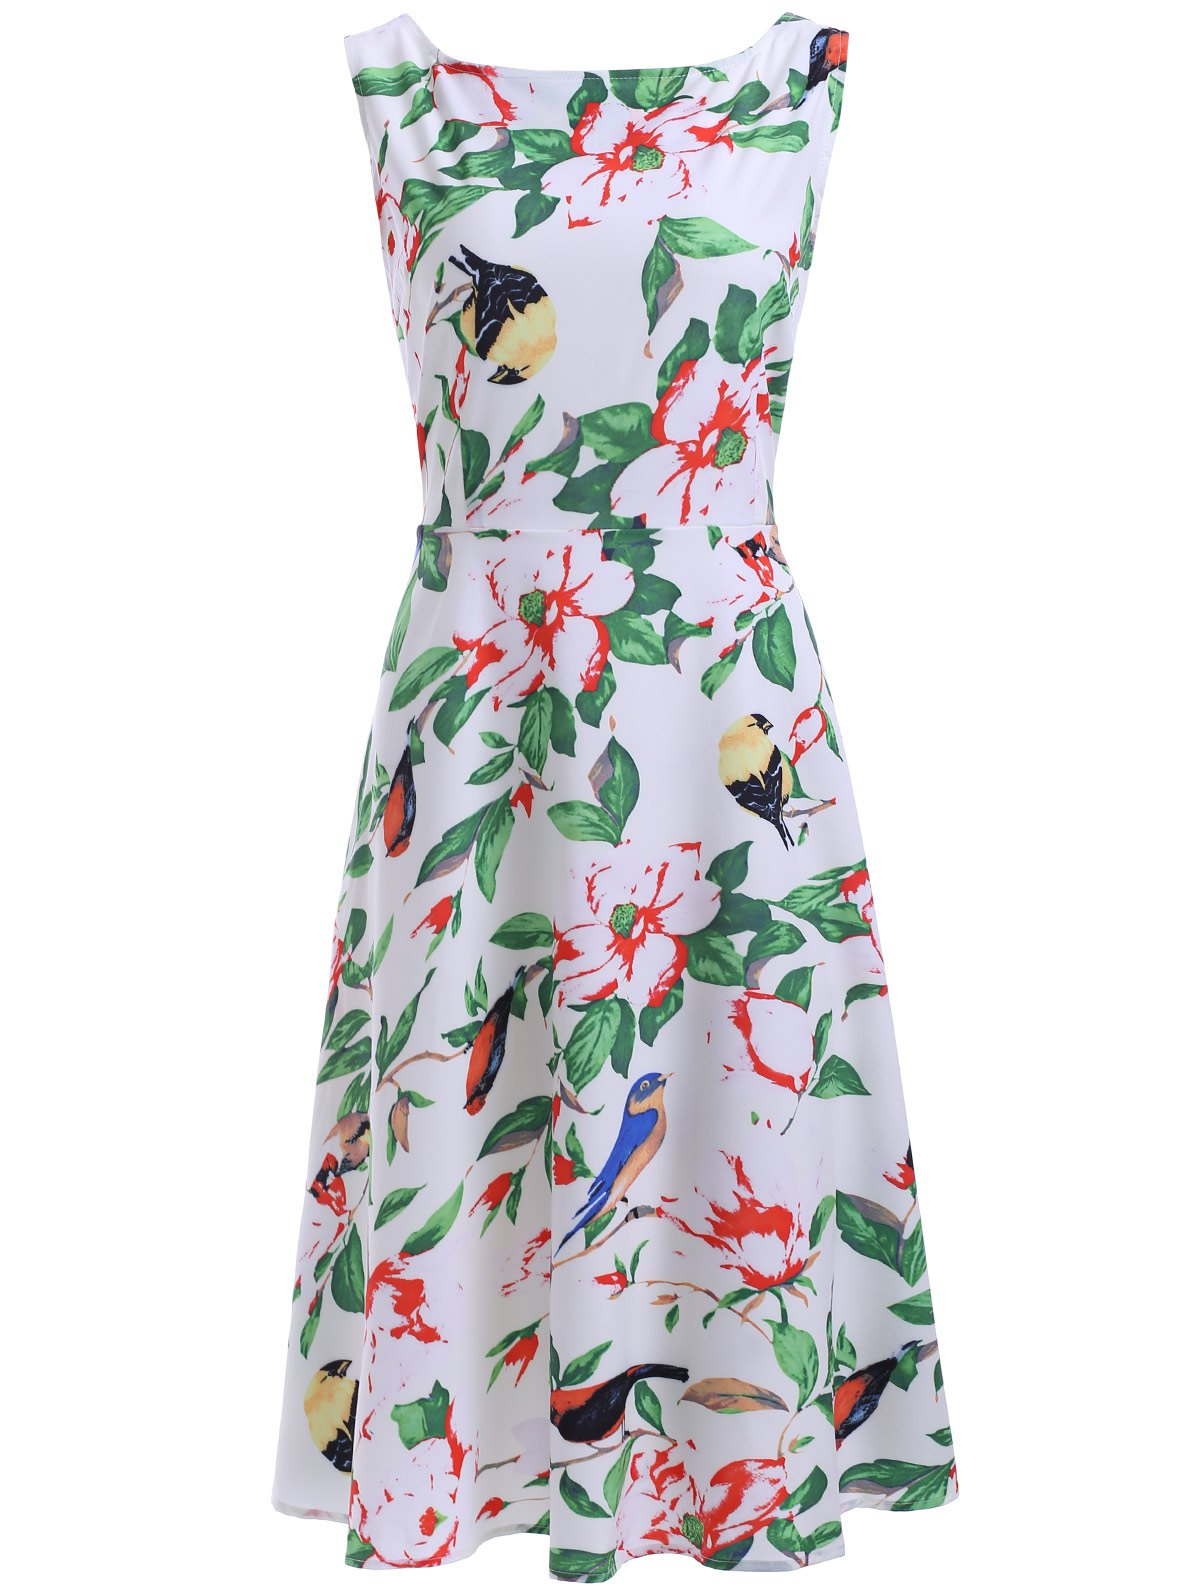 Round Neck Floral Print Sleeveless Dress For Women